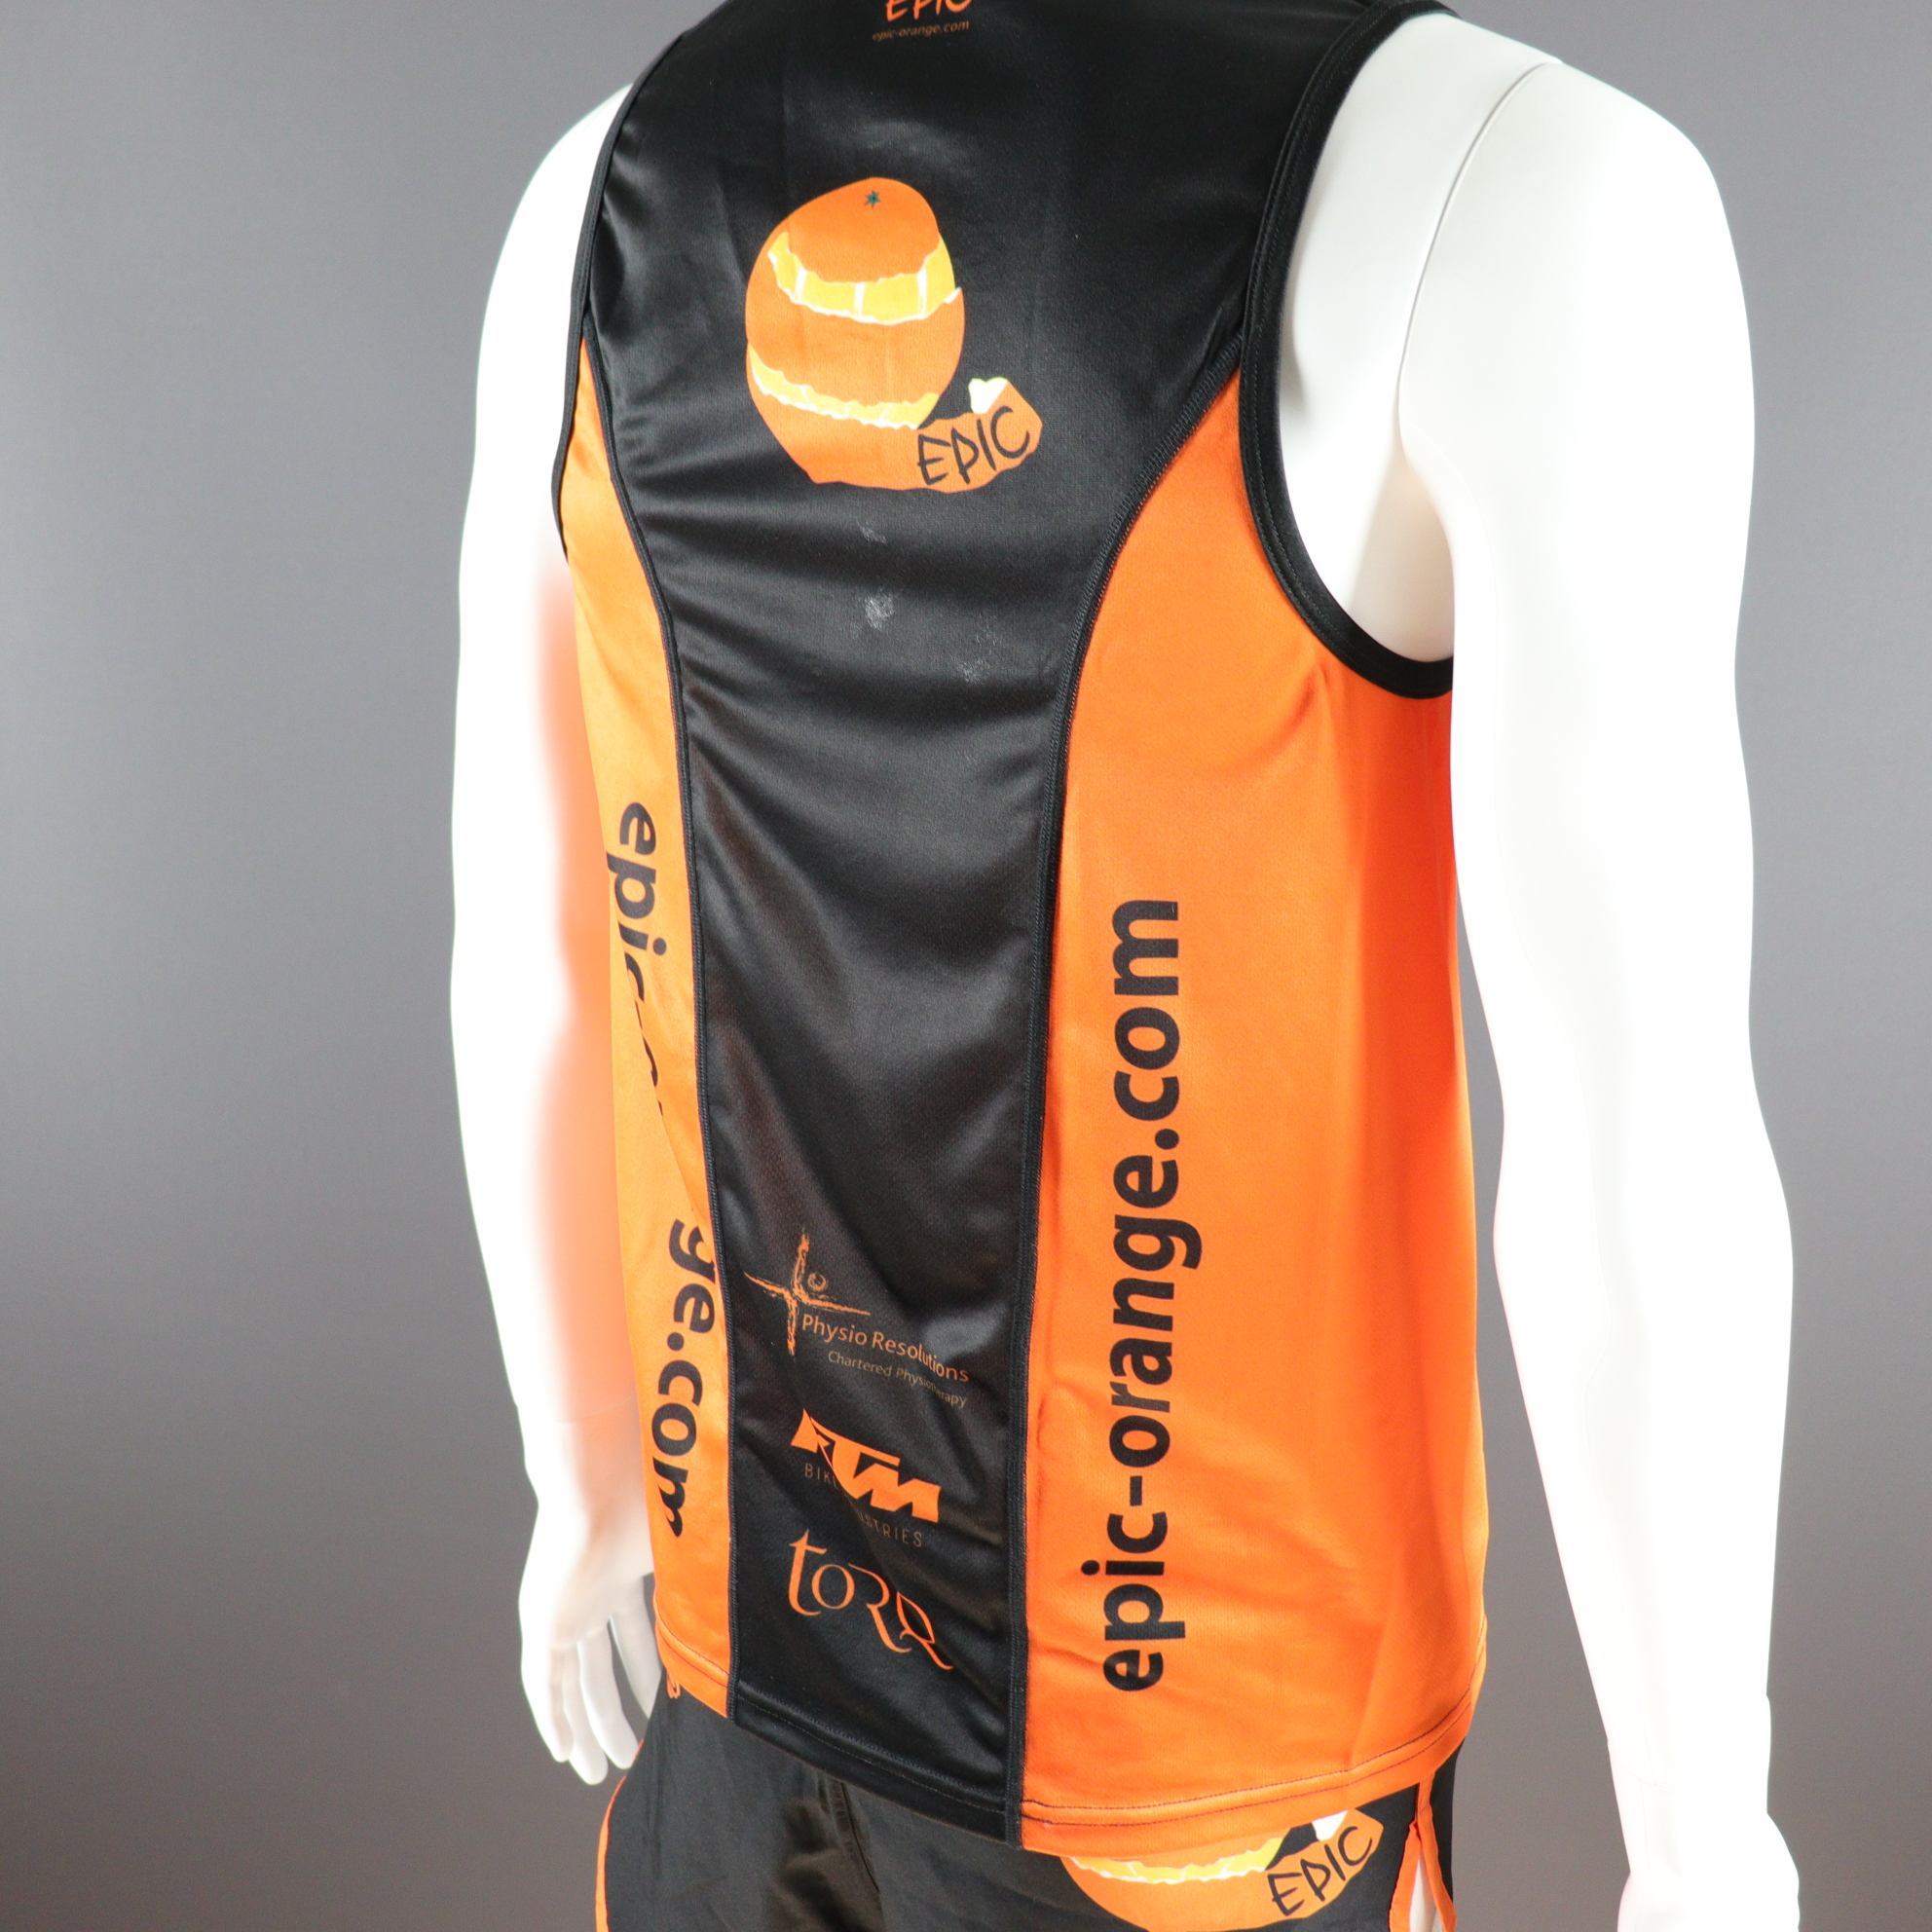 Custom Printed Performance Run Vests